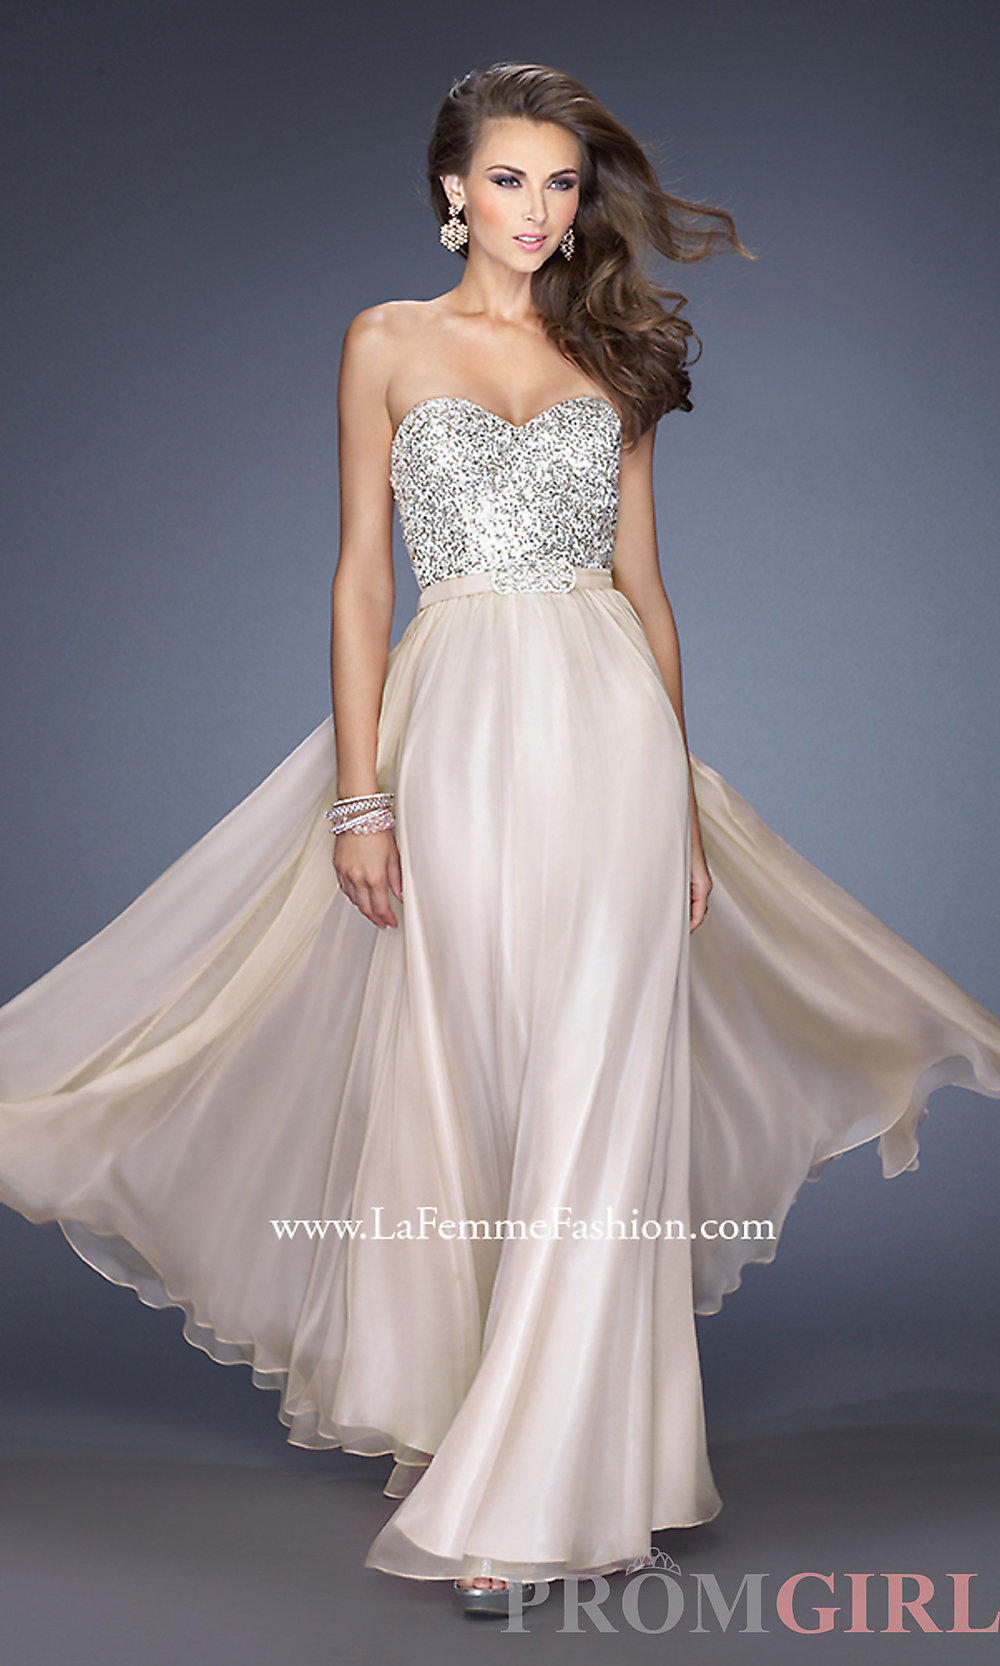 Latest Fancy Gowns, Prom and Cocktail dresses for Weddings and Parties 2014-2015 (12)